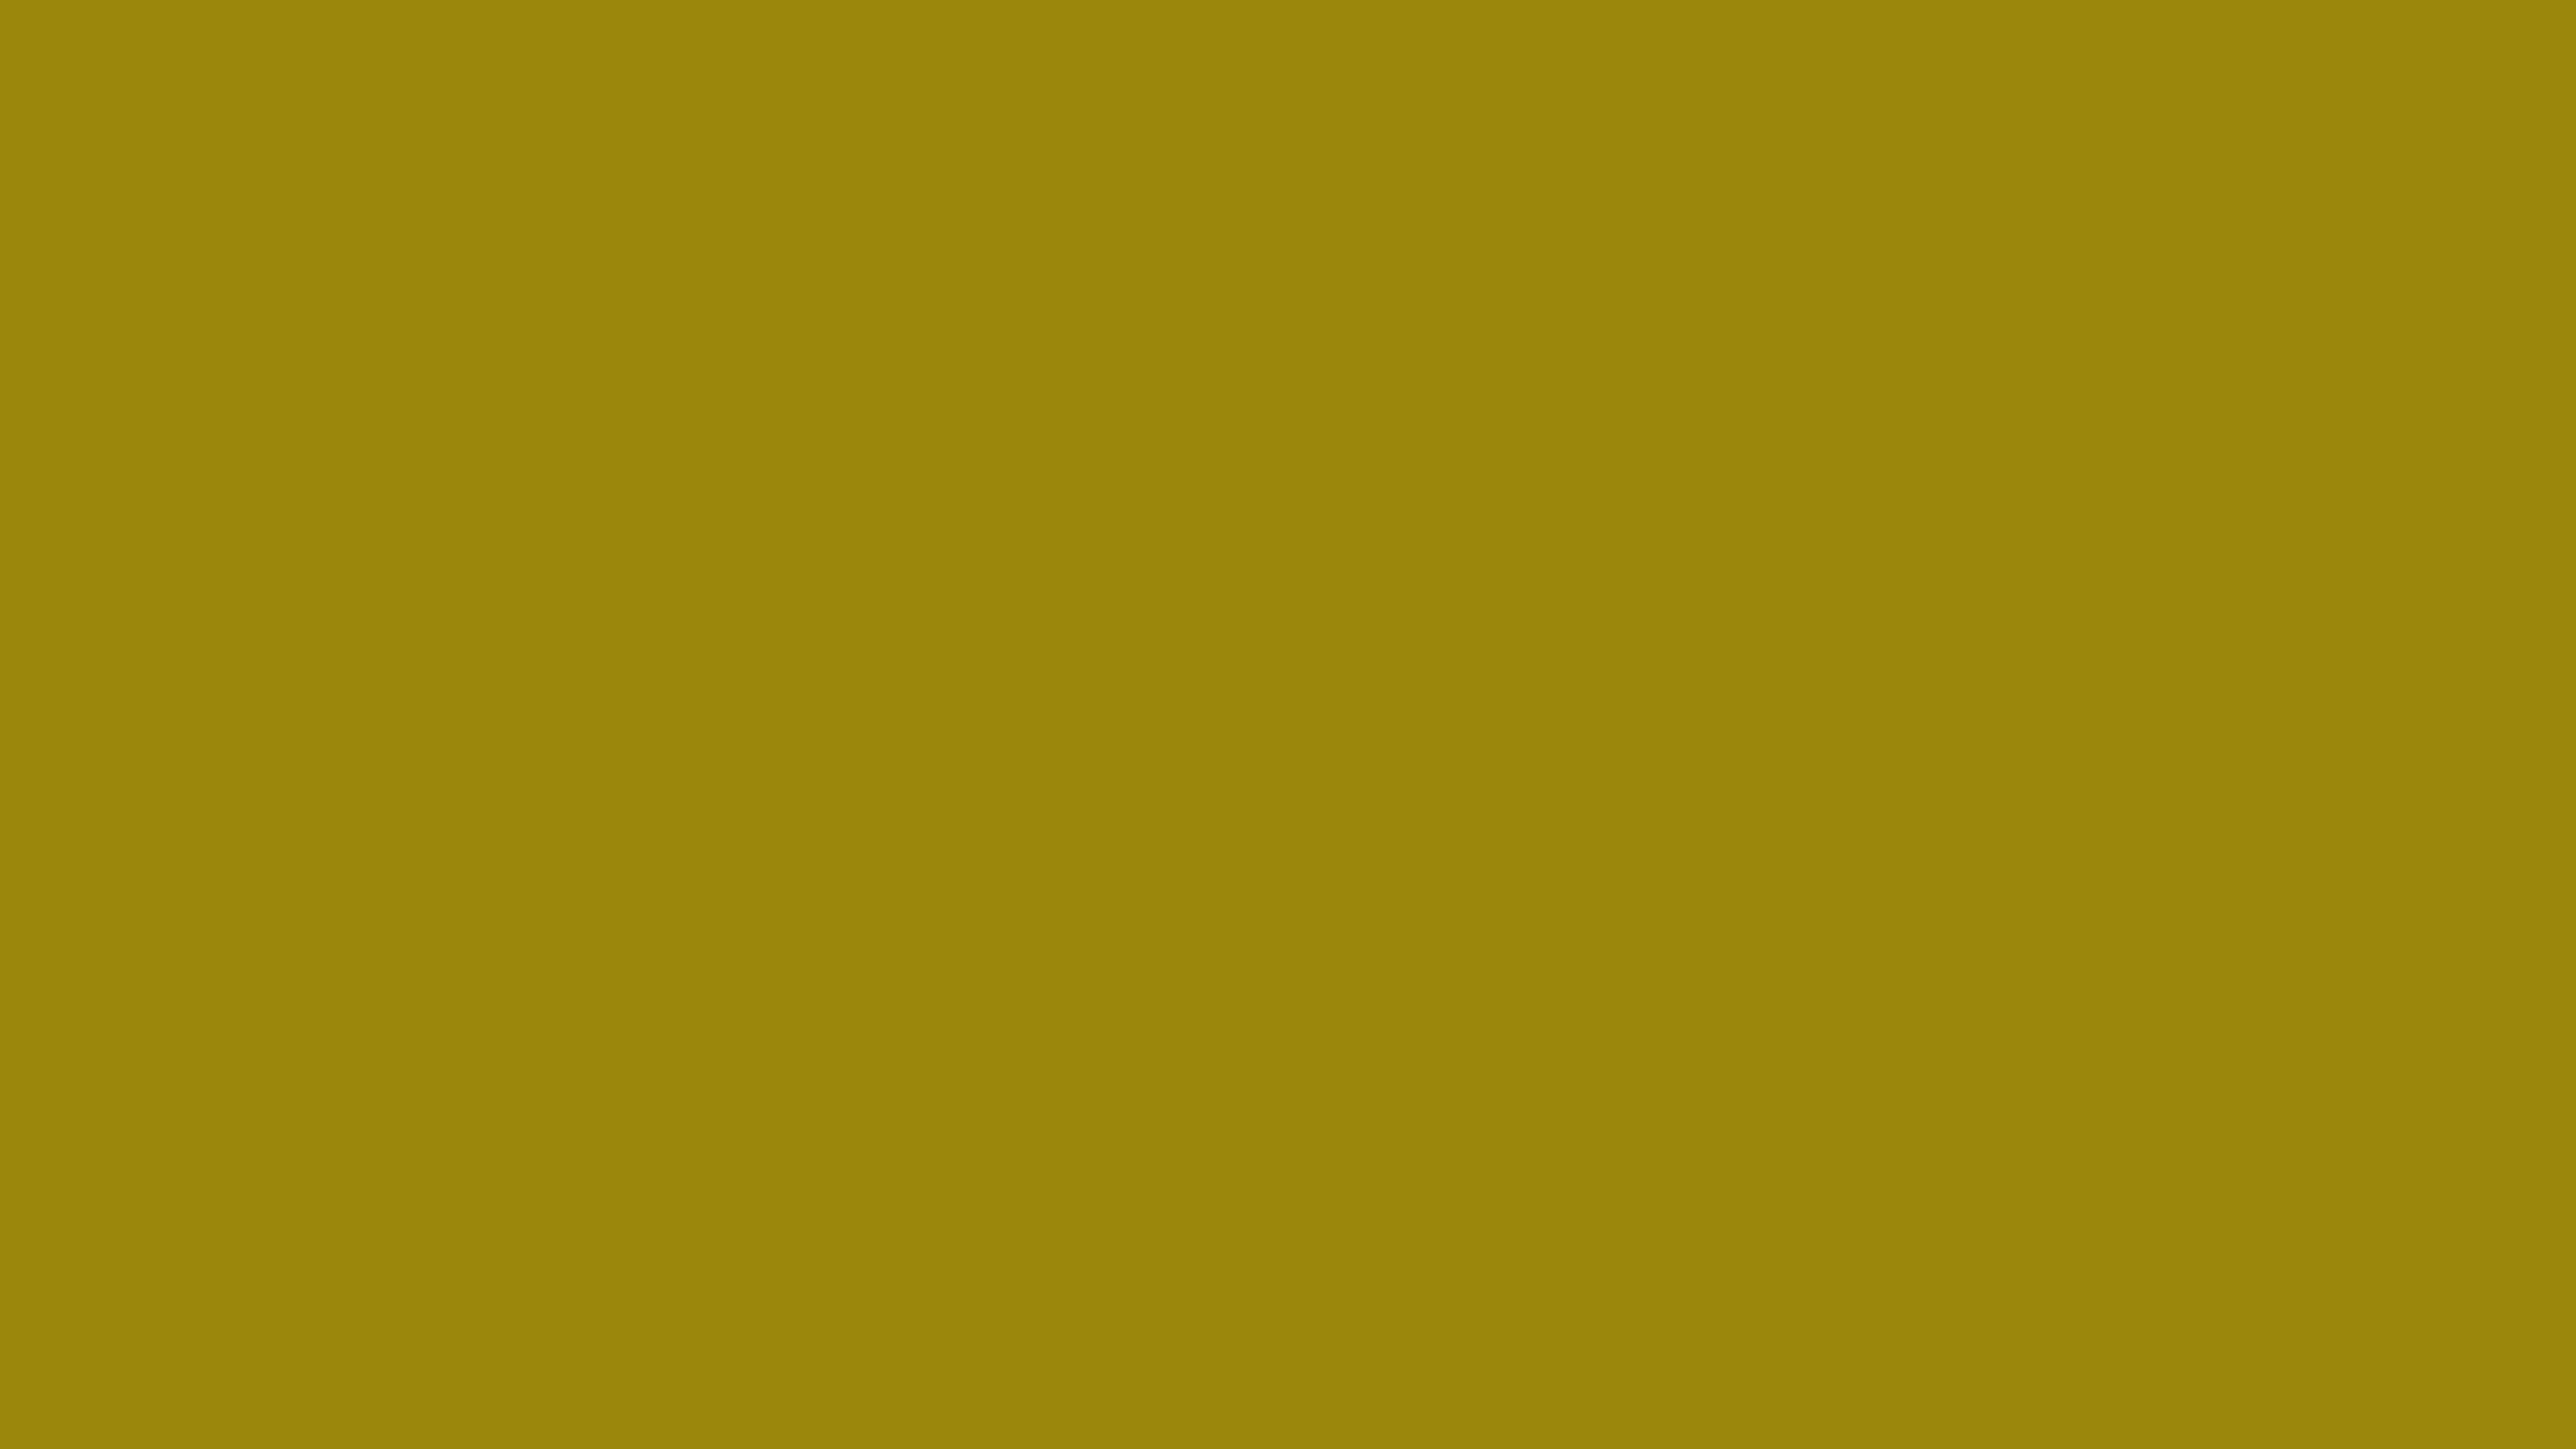 7680x4320 Dark Yellow Solid Color Background